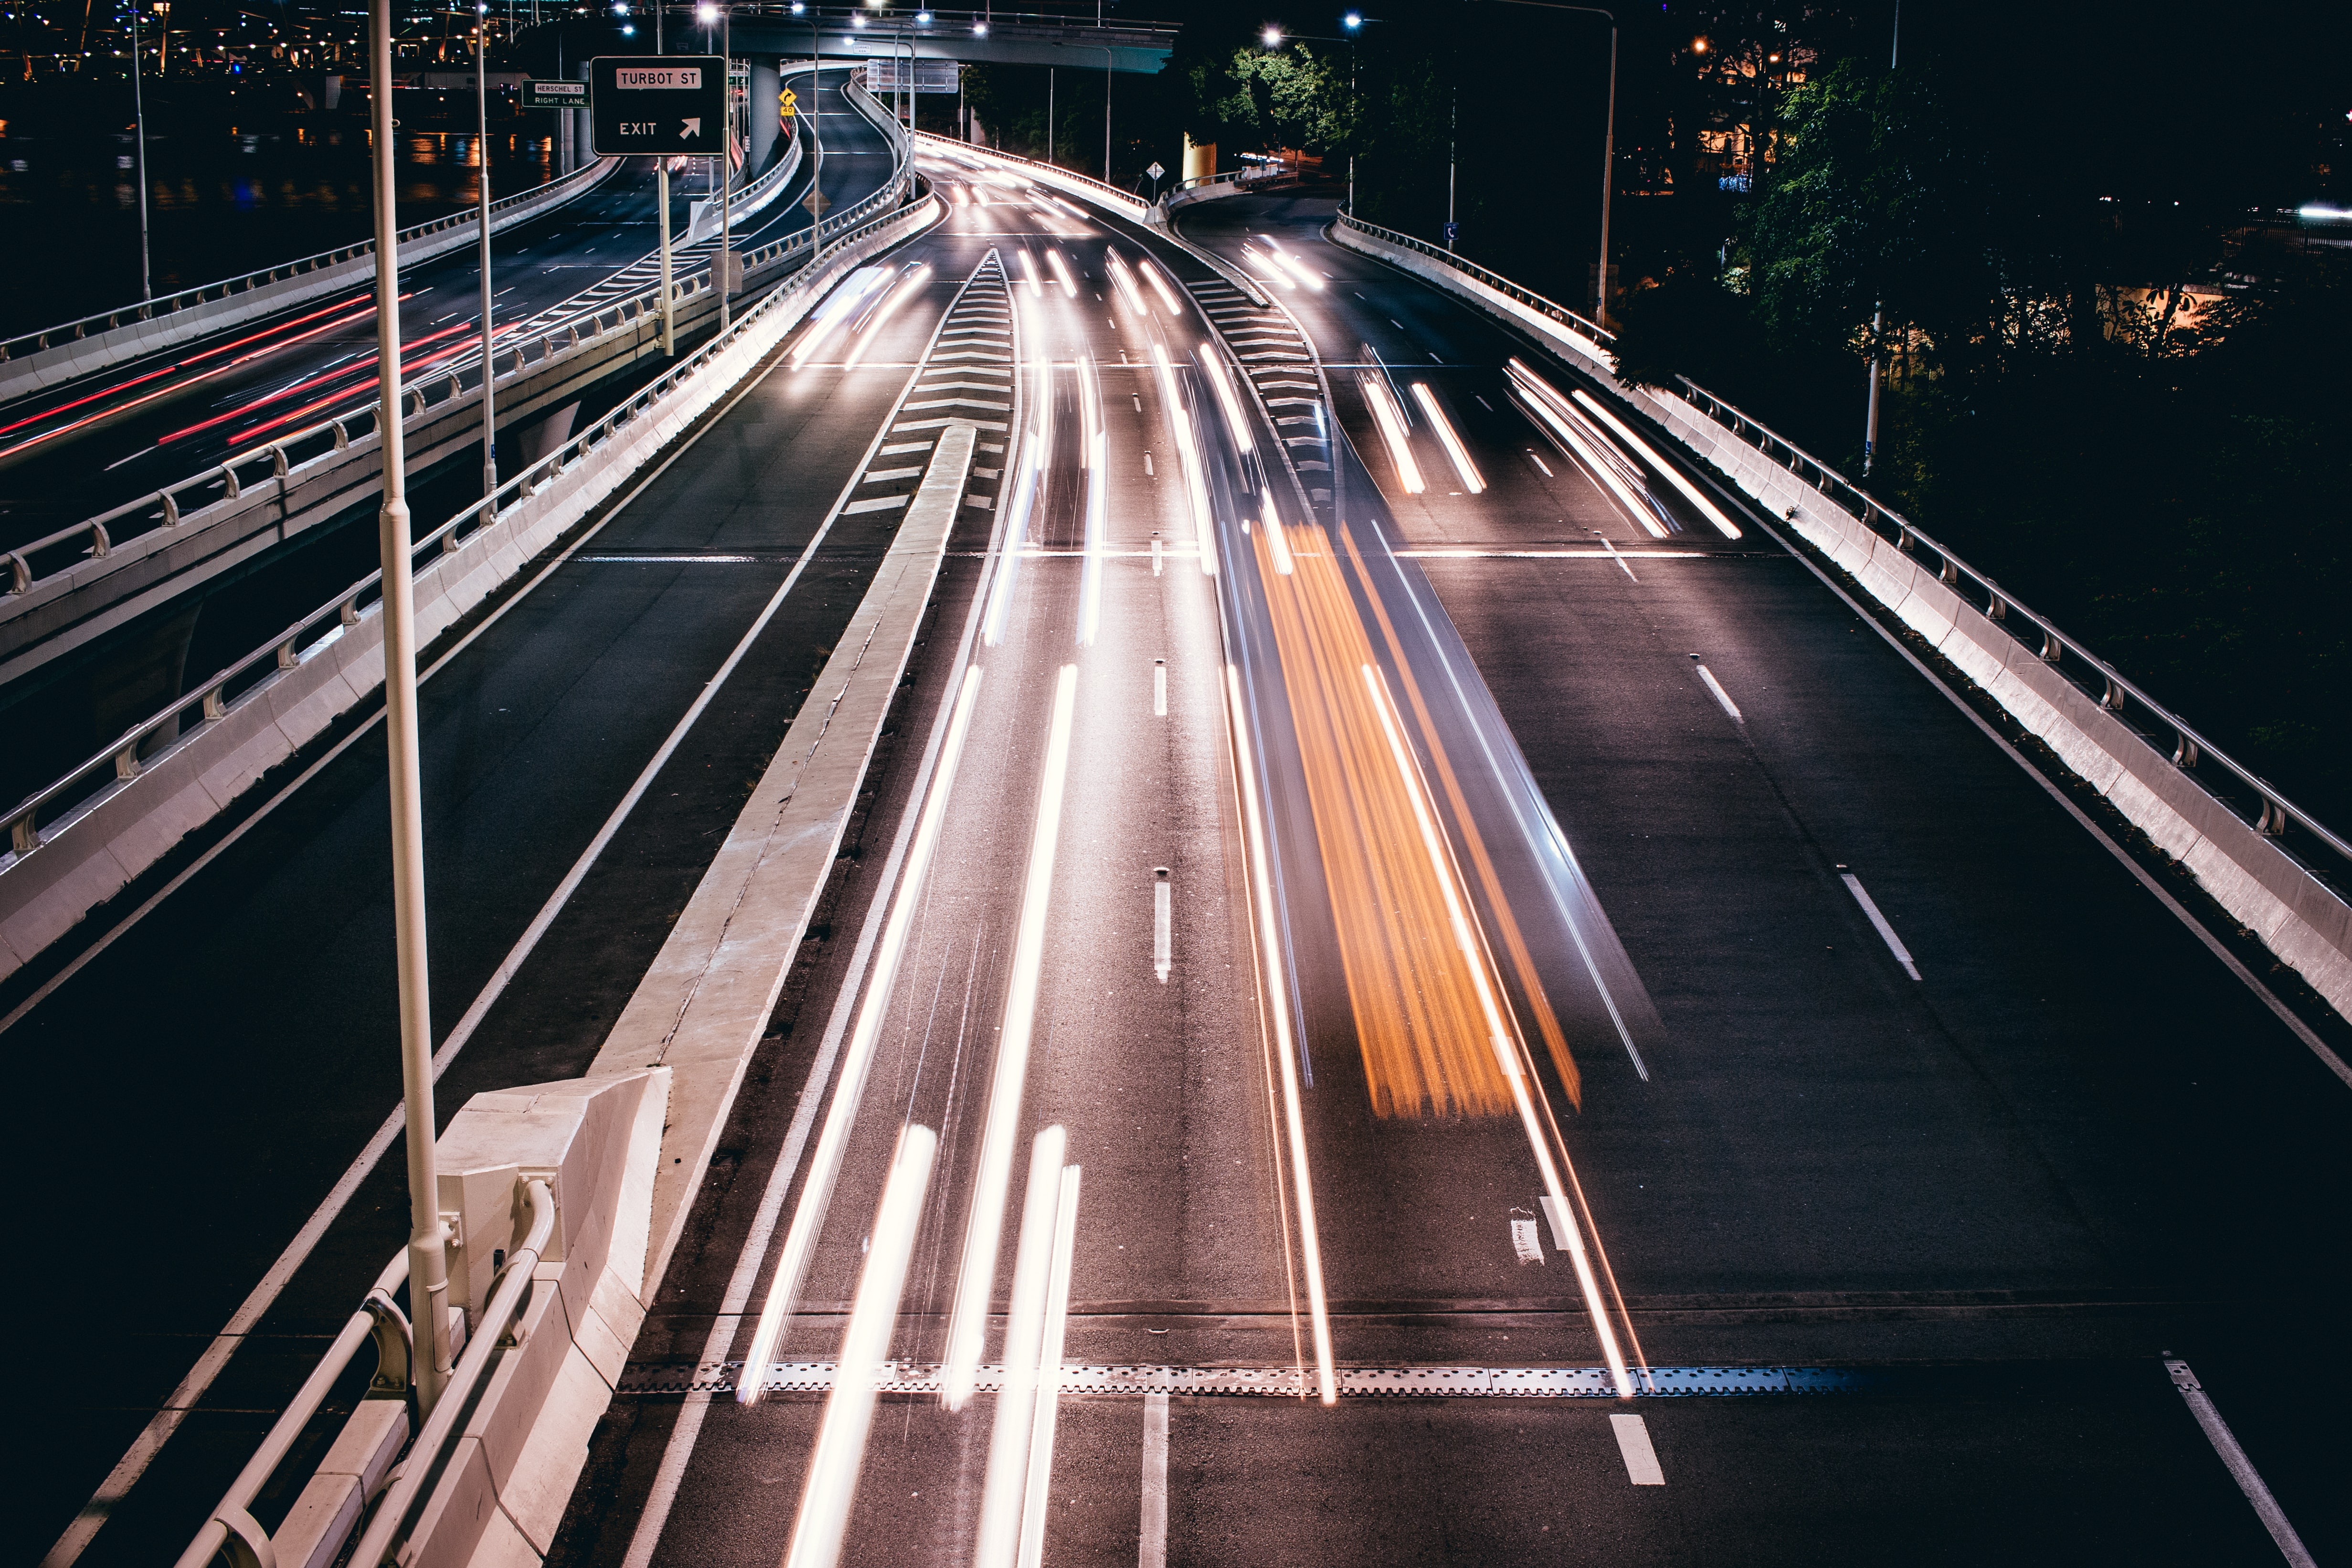 timelapse photography of roads during nighttime